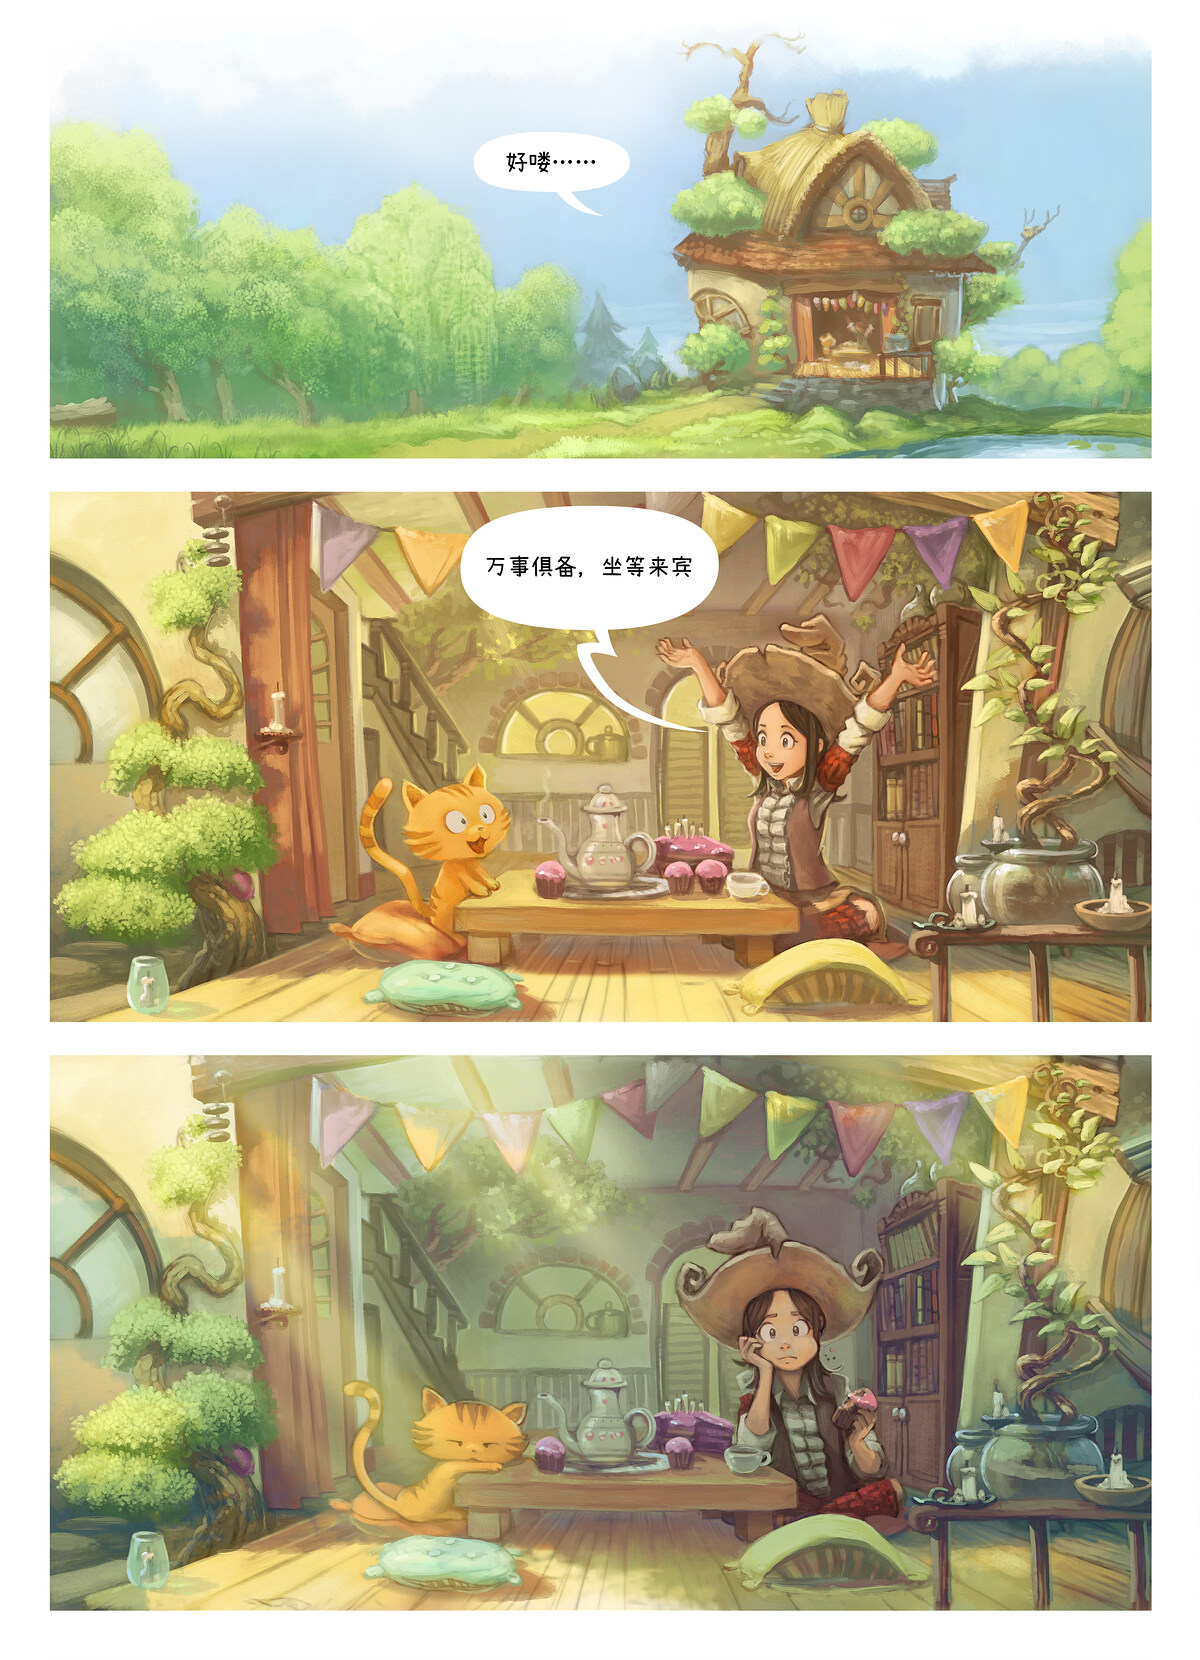 A webcomic page of Pepper&Carrot, 漫画全集 8 [cn], 页面 3